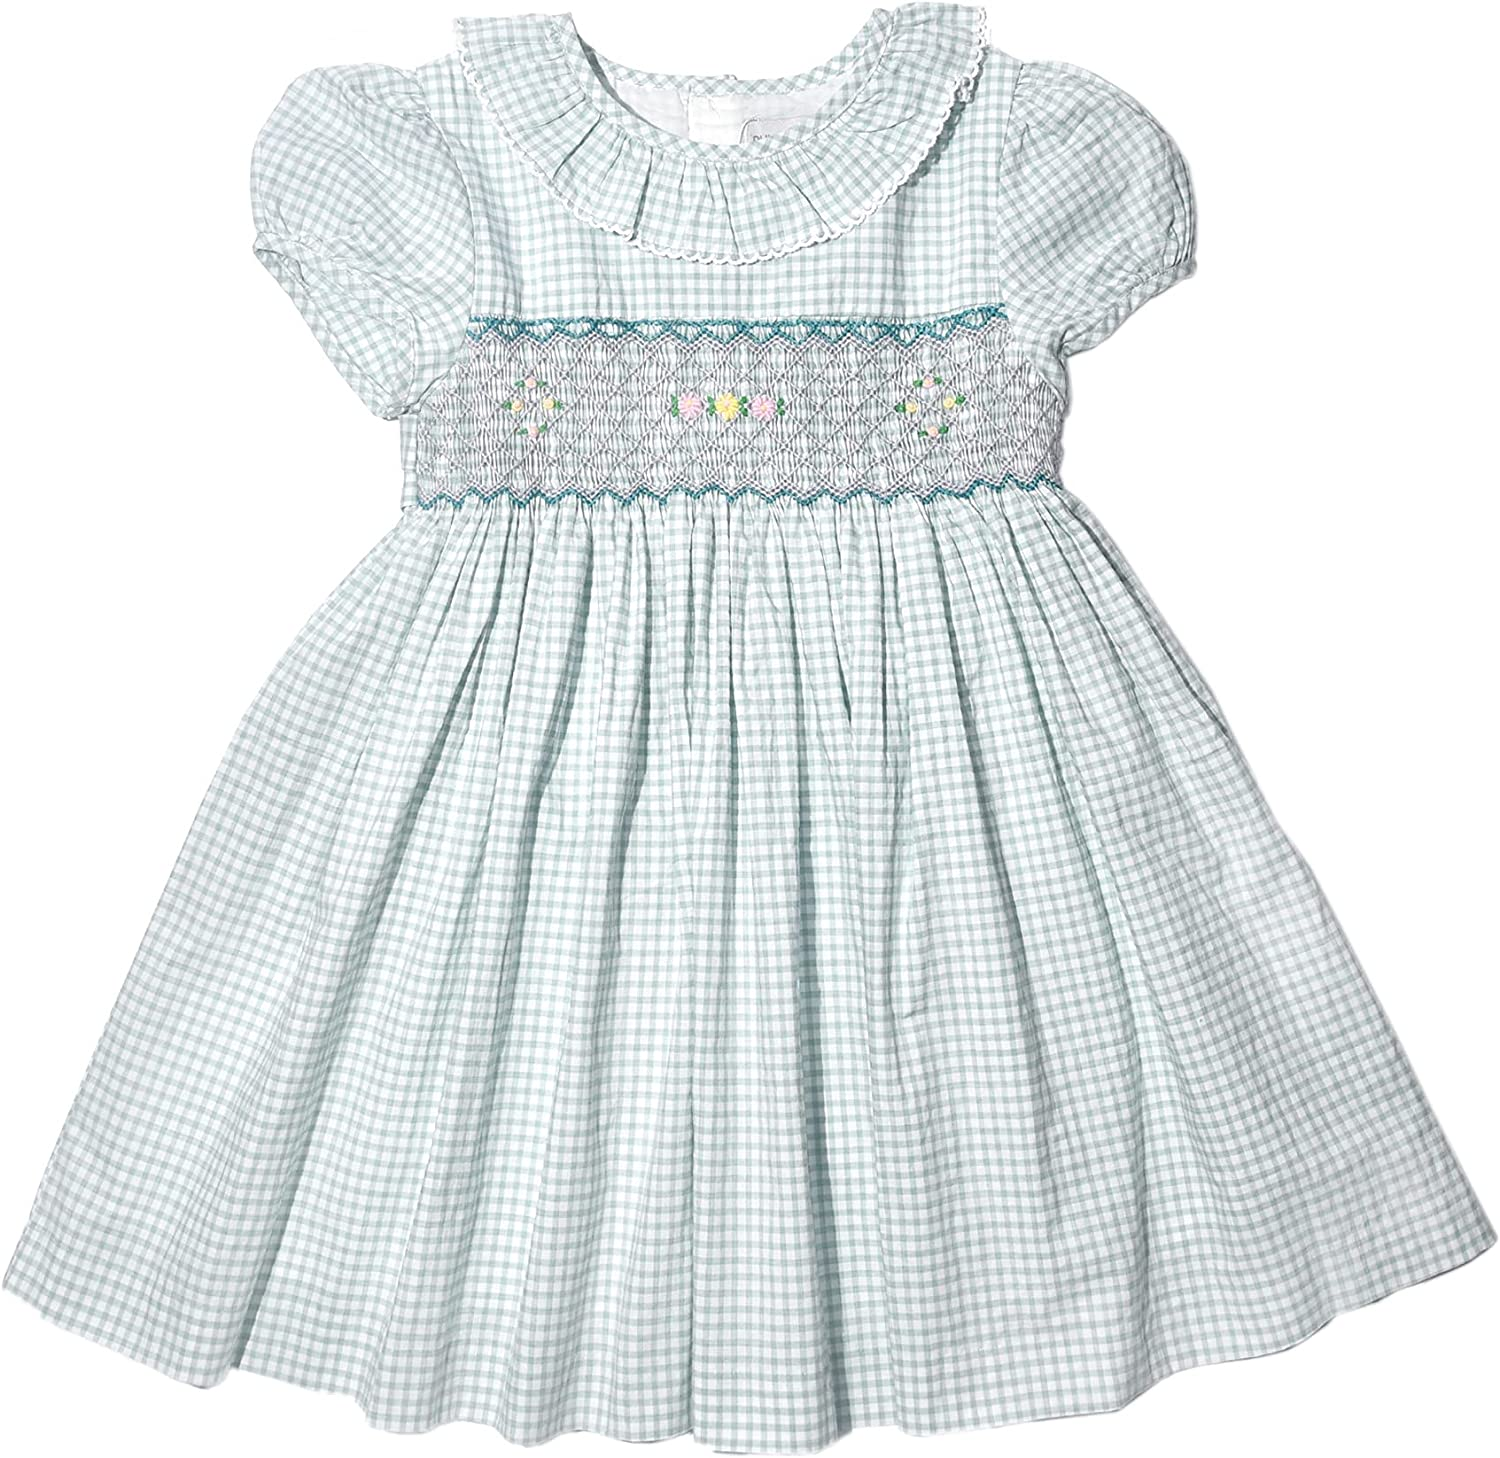 Toddler Baby Girls Soft Floral Cotton Princess Hand Smocked Dress Frilly Sleeve Ruffle Swing Tunic Shirt Casual Party Dress